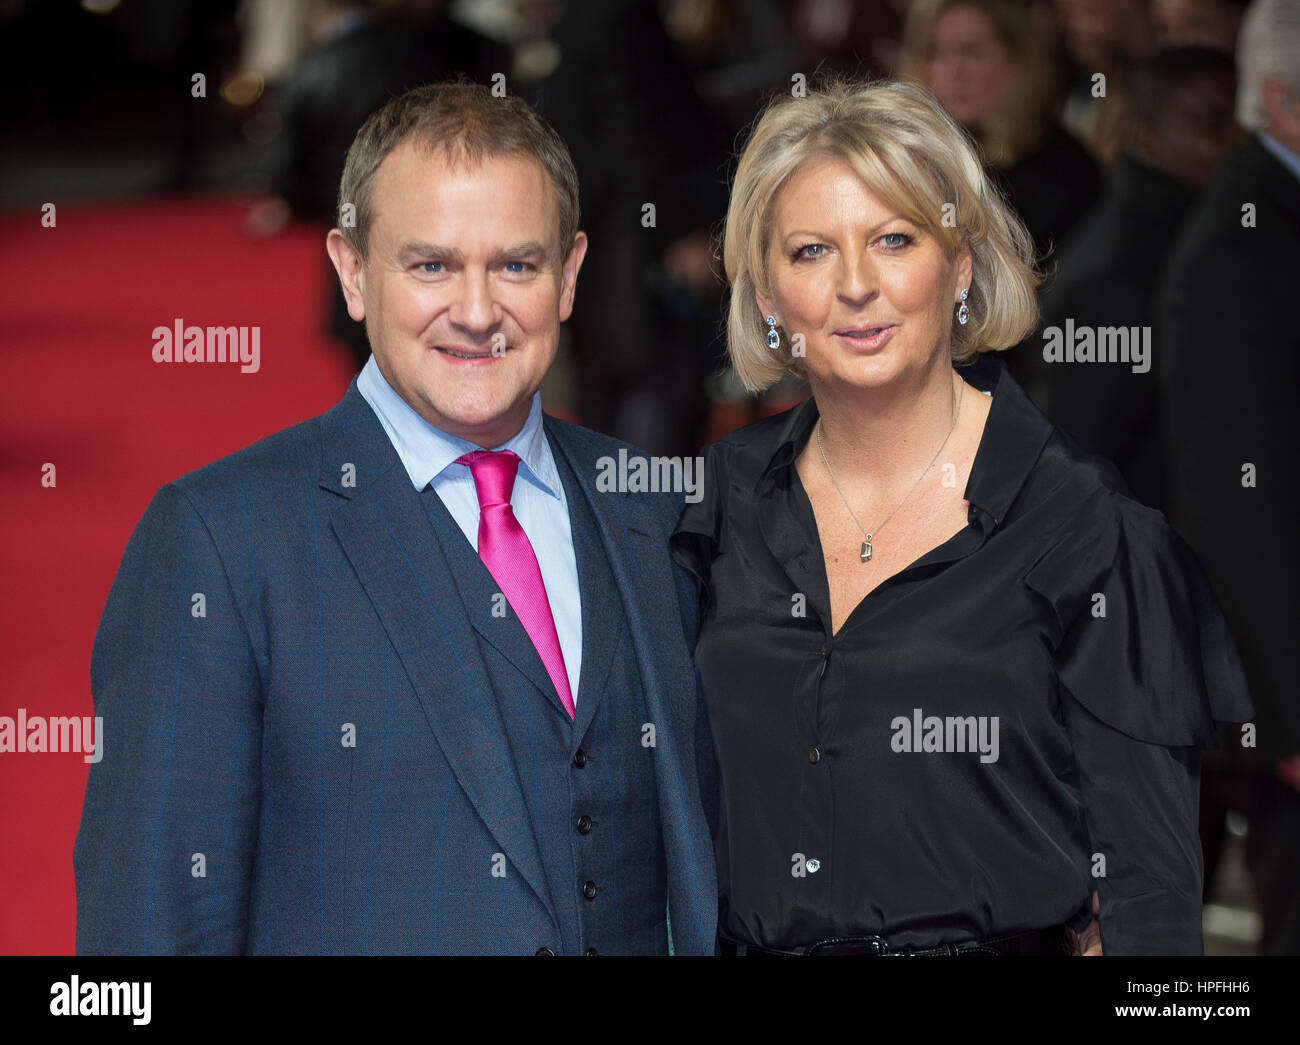 London, UK. 21st February, 2017. Hugh Bonneville and Lucinda Evans attends the UK Premiere of Viceroy's House - Stock Image